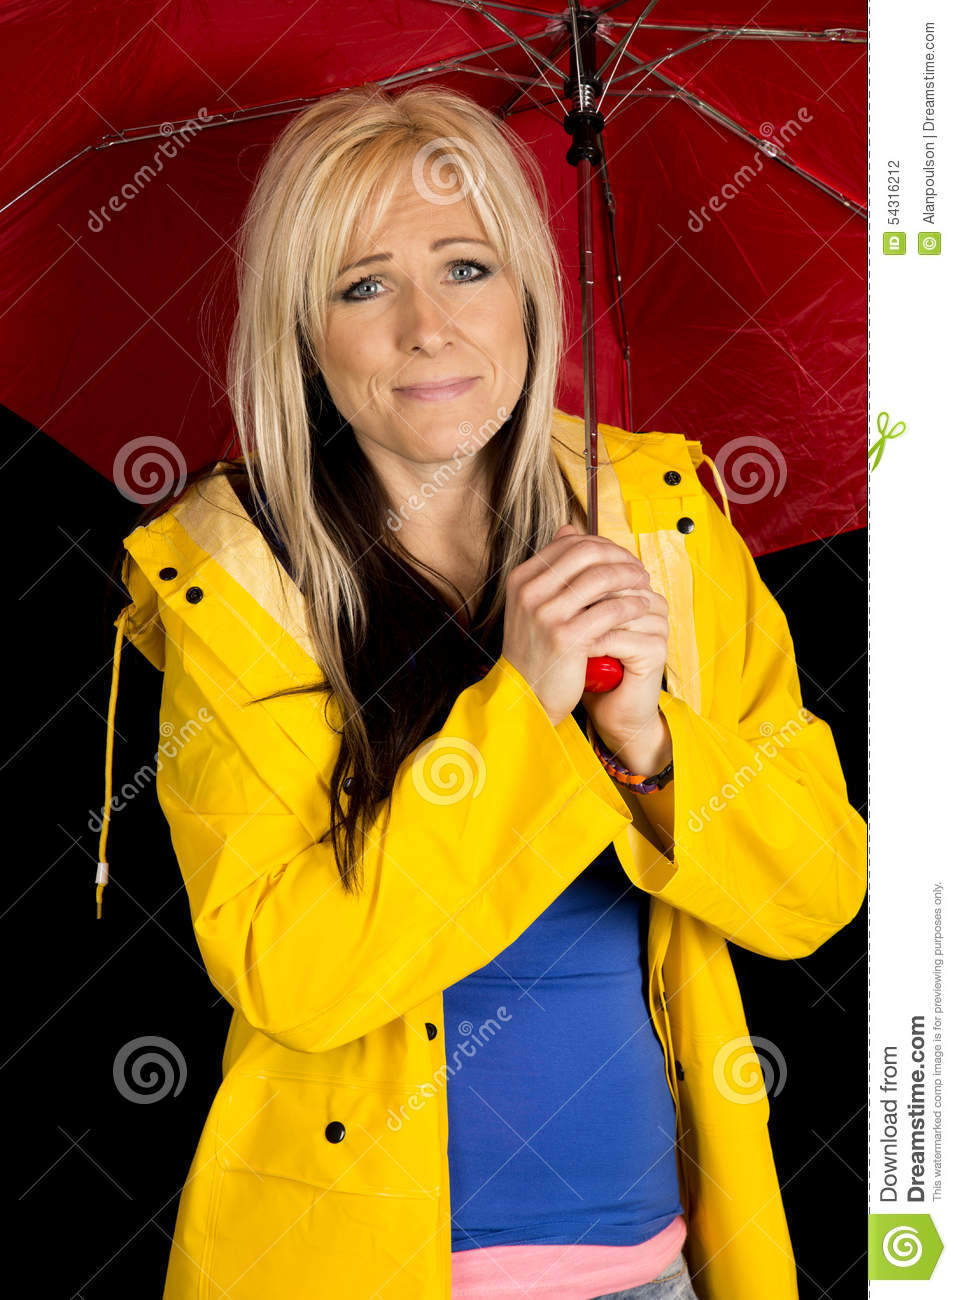 Woman red umbrella and yellow jacket funny expression